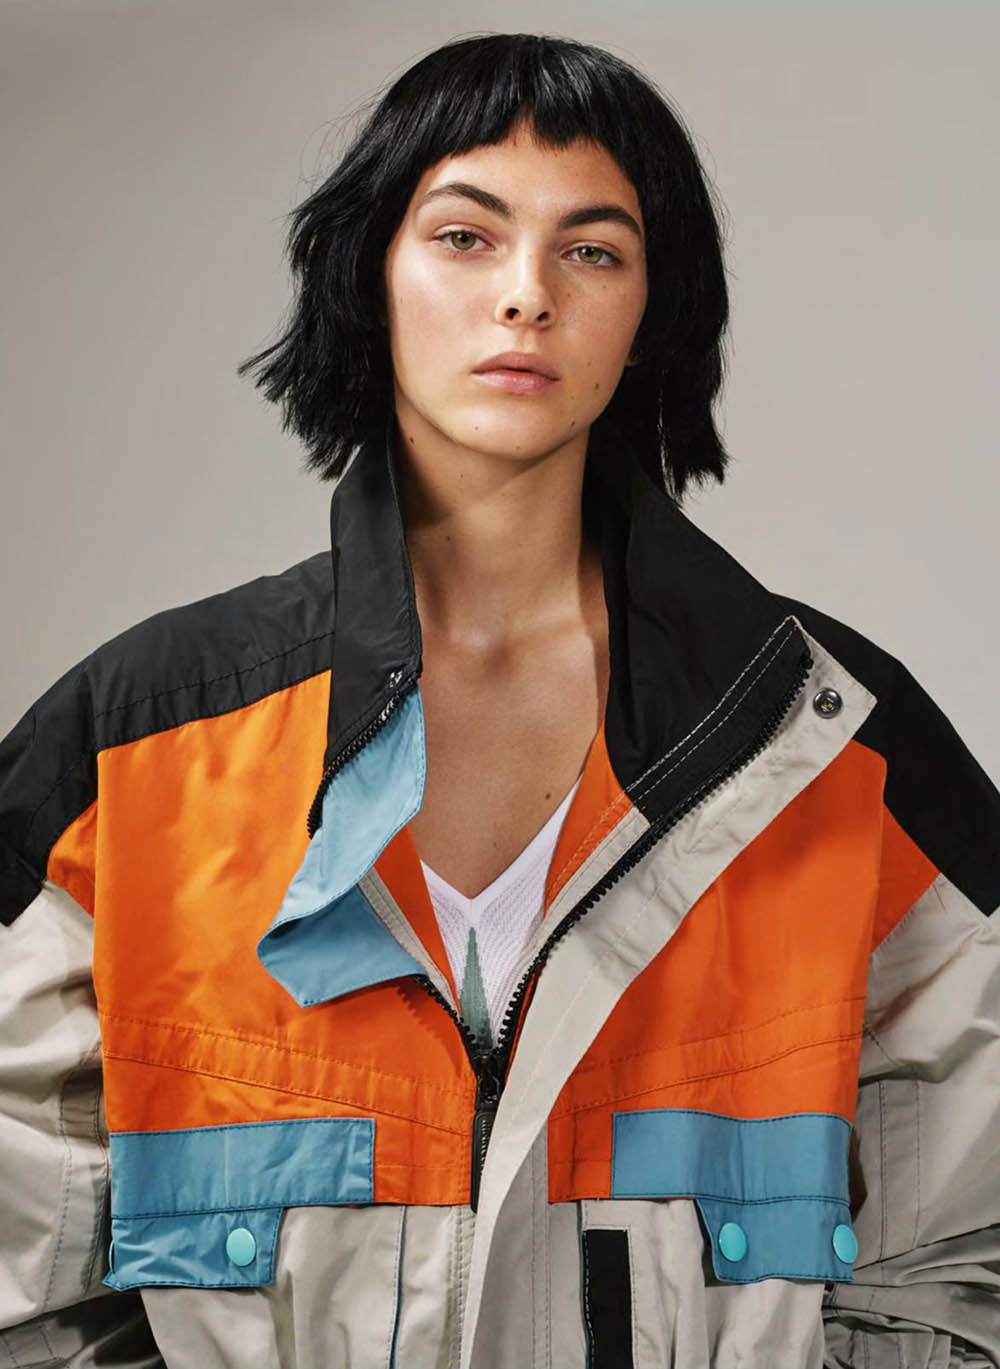 Vittoria Ceretti by Collier Schorr for British Vogue April 2018